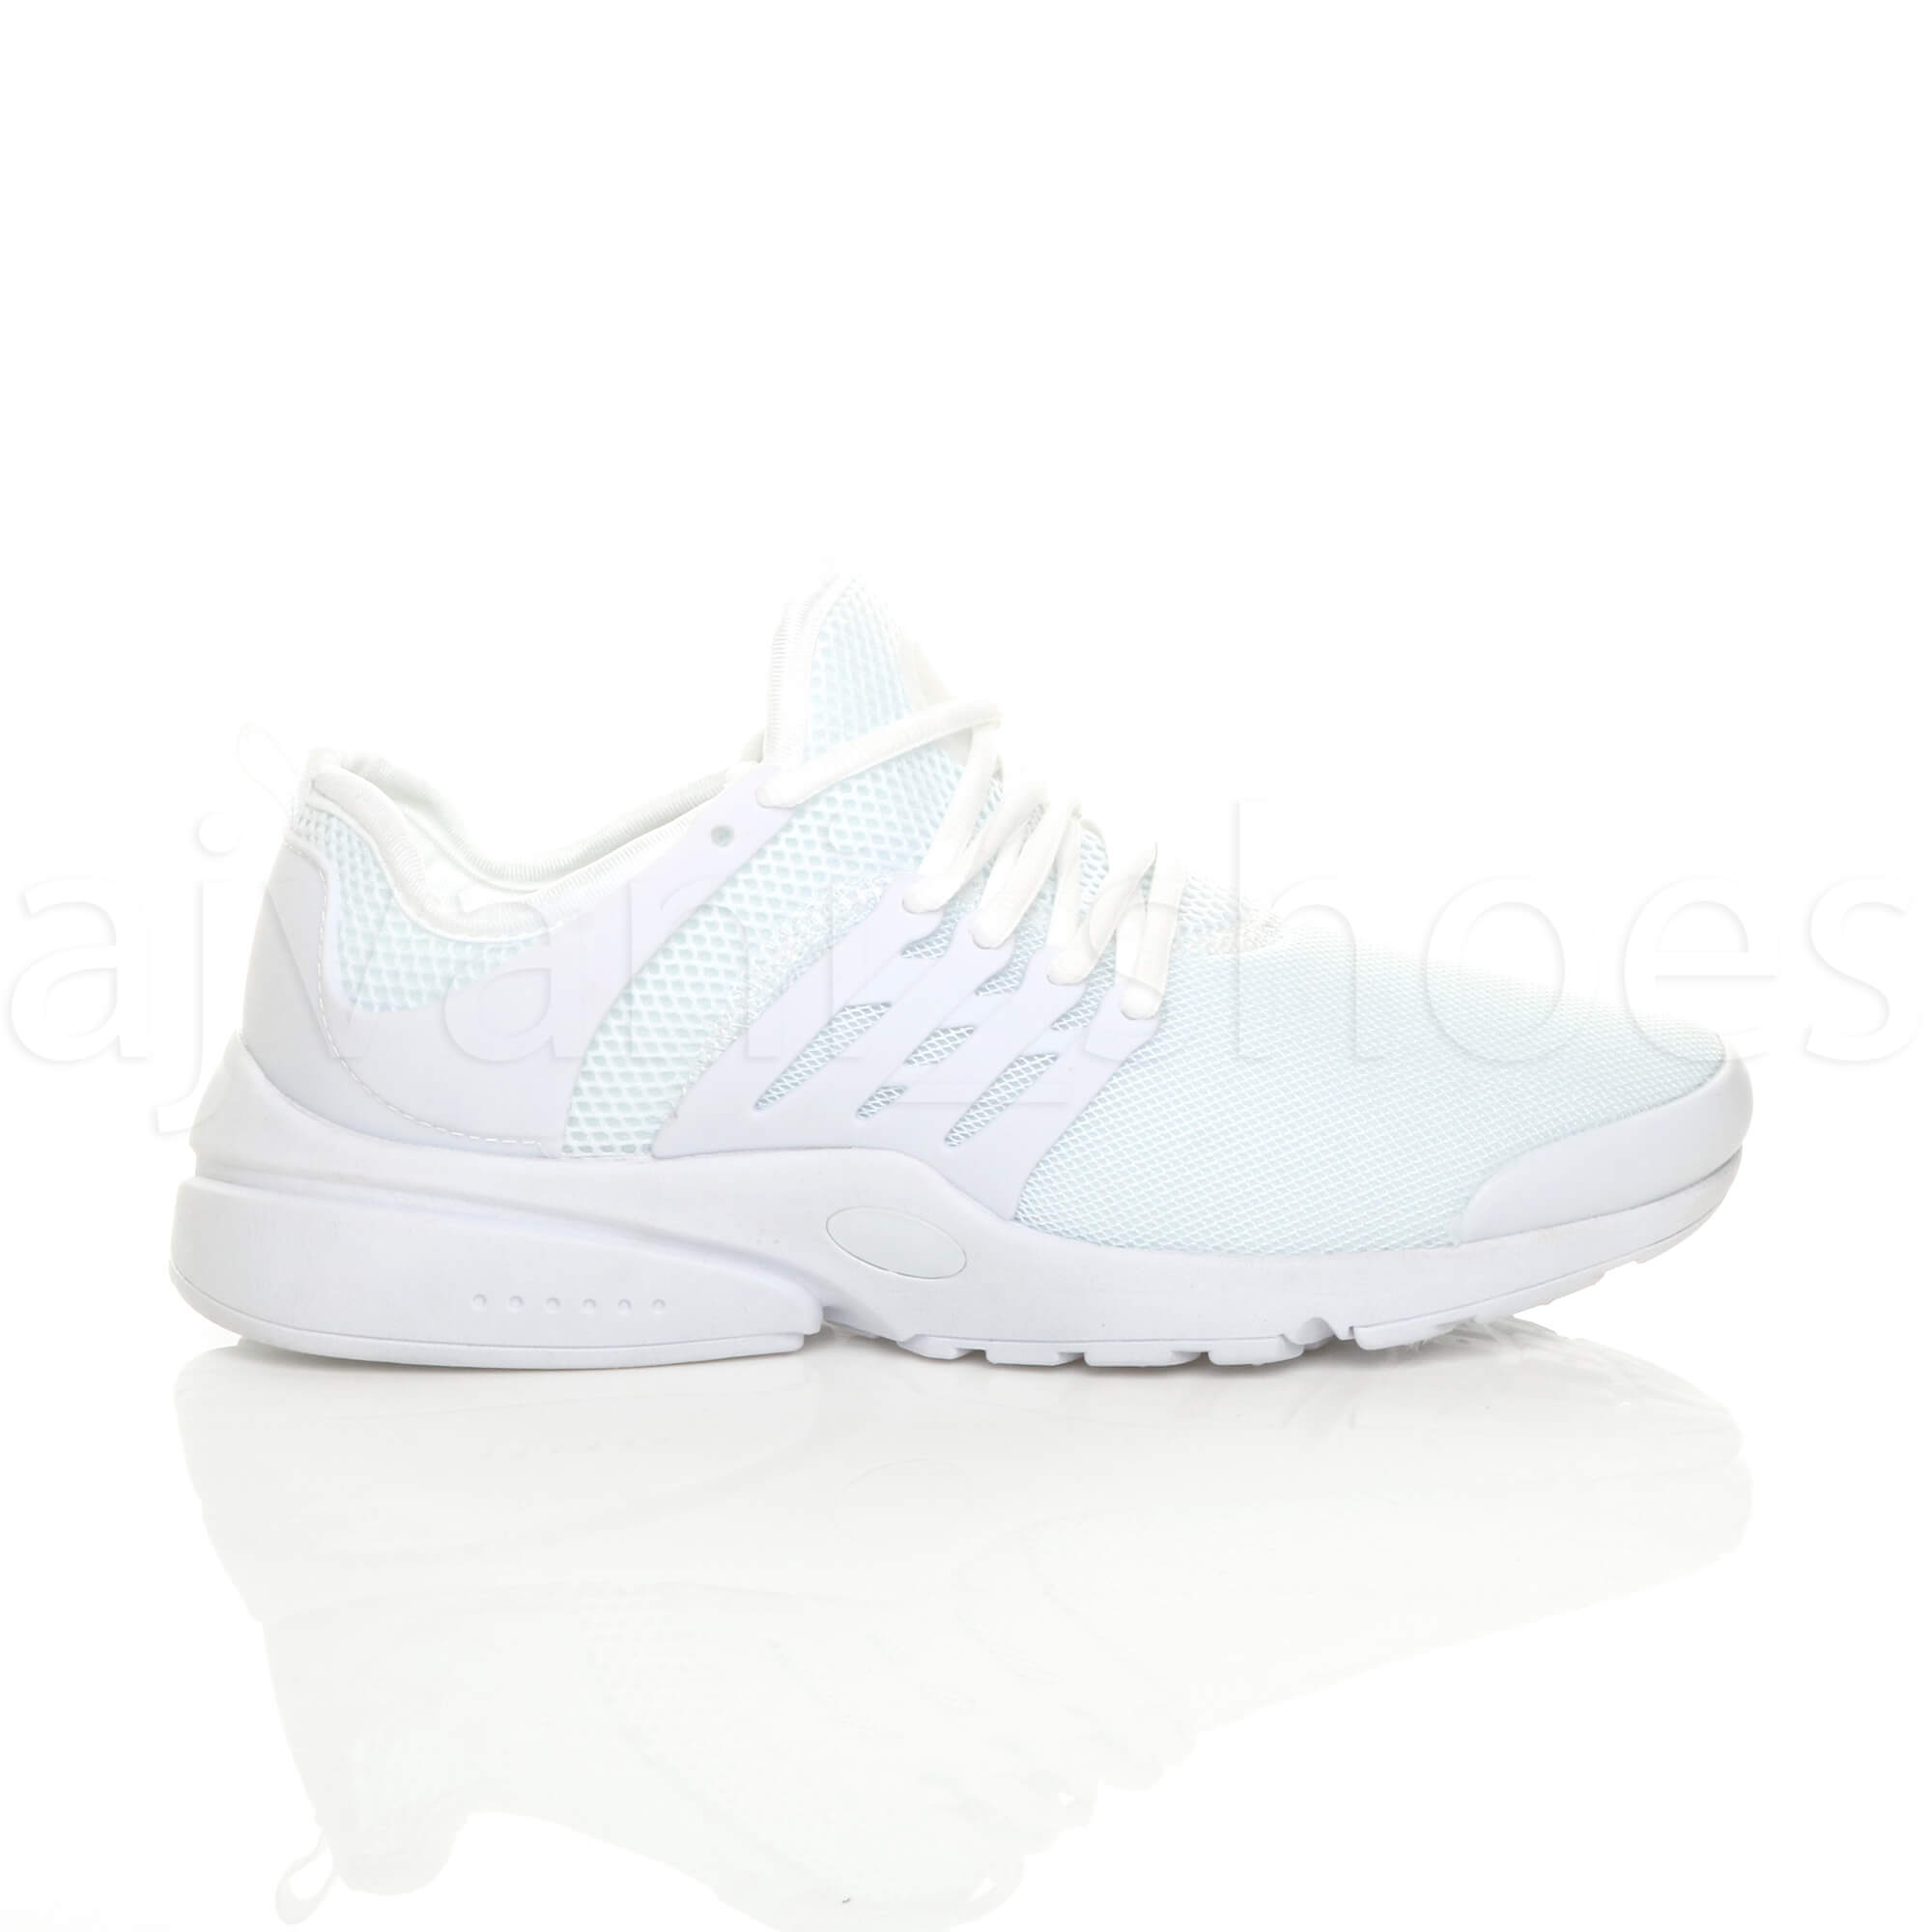 MENS-LACE-UP-SPORTS-GYM-FITNESS-RUNNING-FLEXIBLE-TRAINERS-CASUAL-SNEAKERS-SIZE thumbnail 43